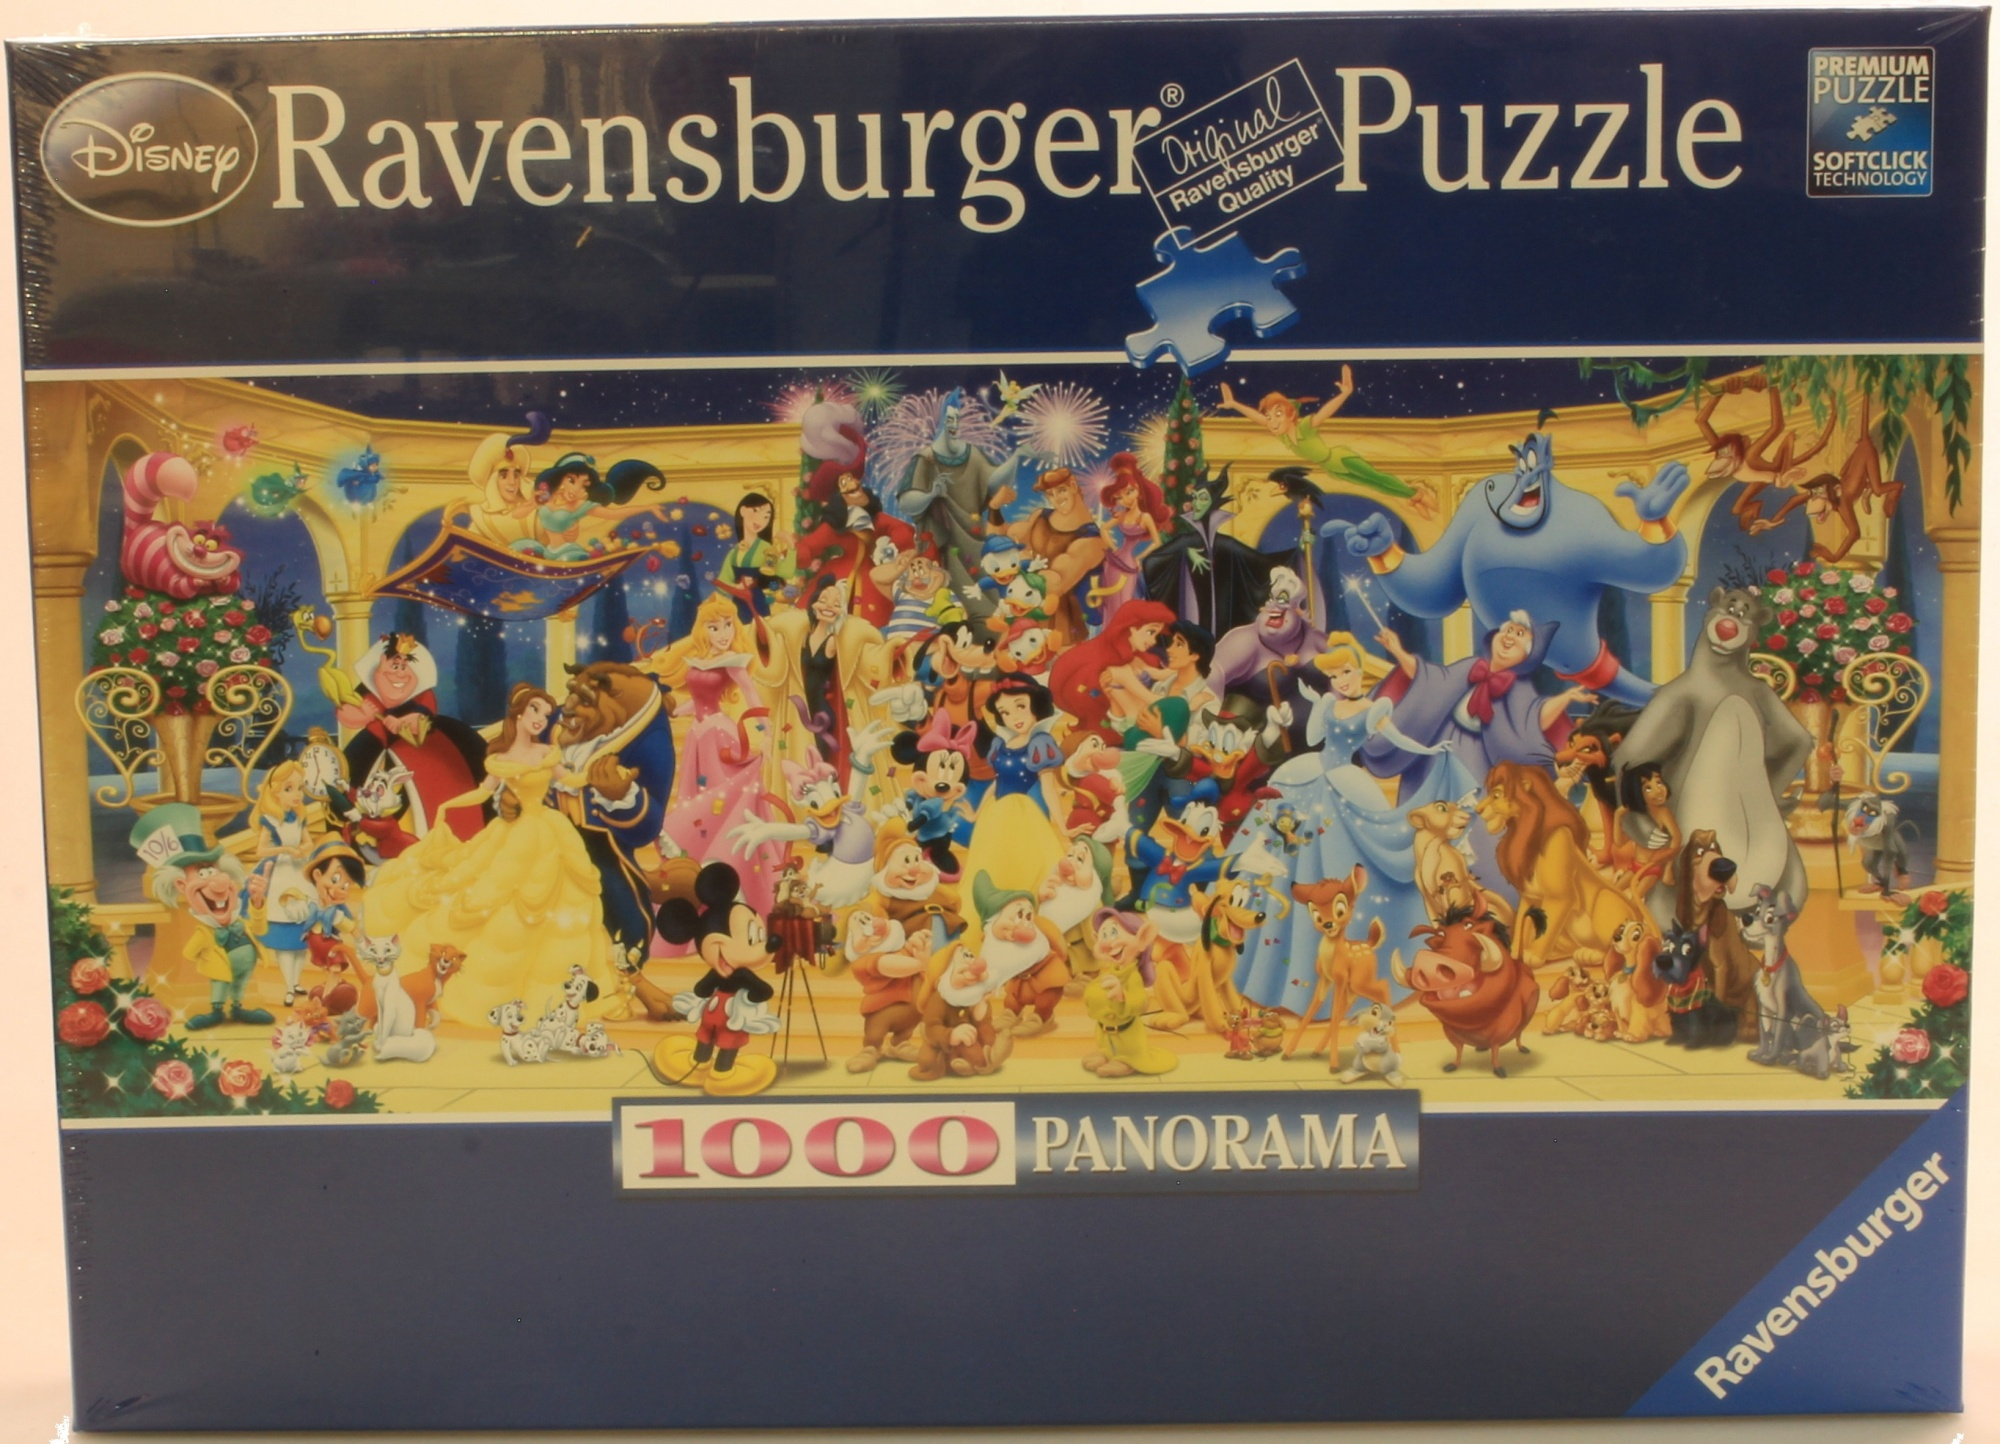 4-X-Ravensburger-Disney-Panoramic-1000pc-Jigsaw-Puzzle-Free-Delivery